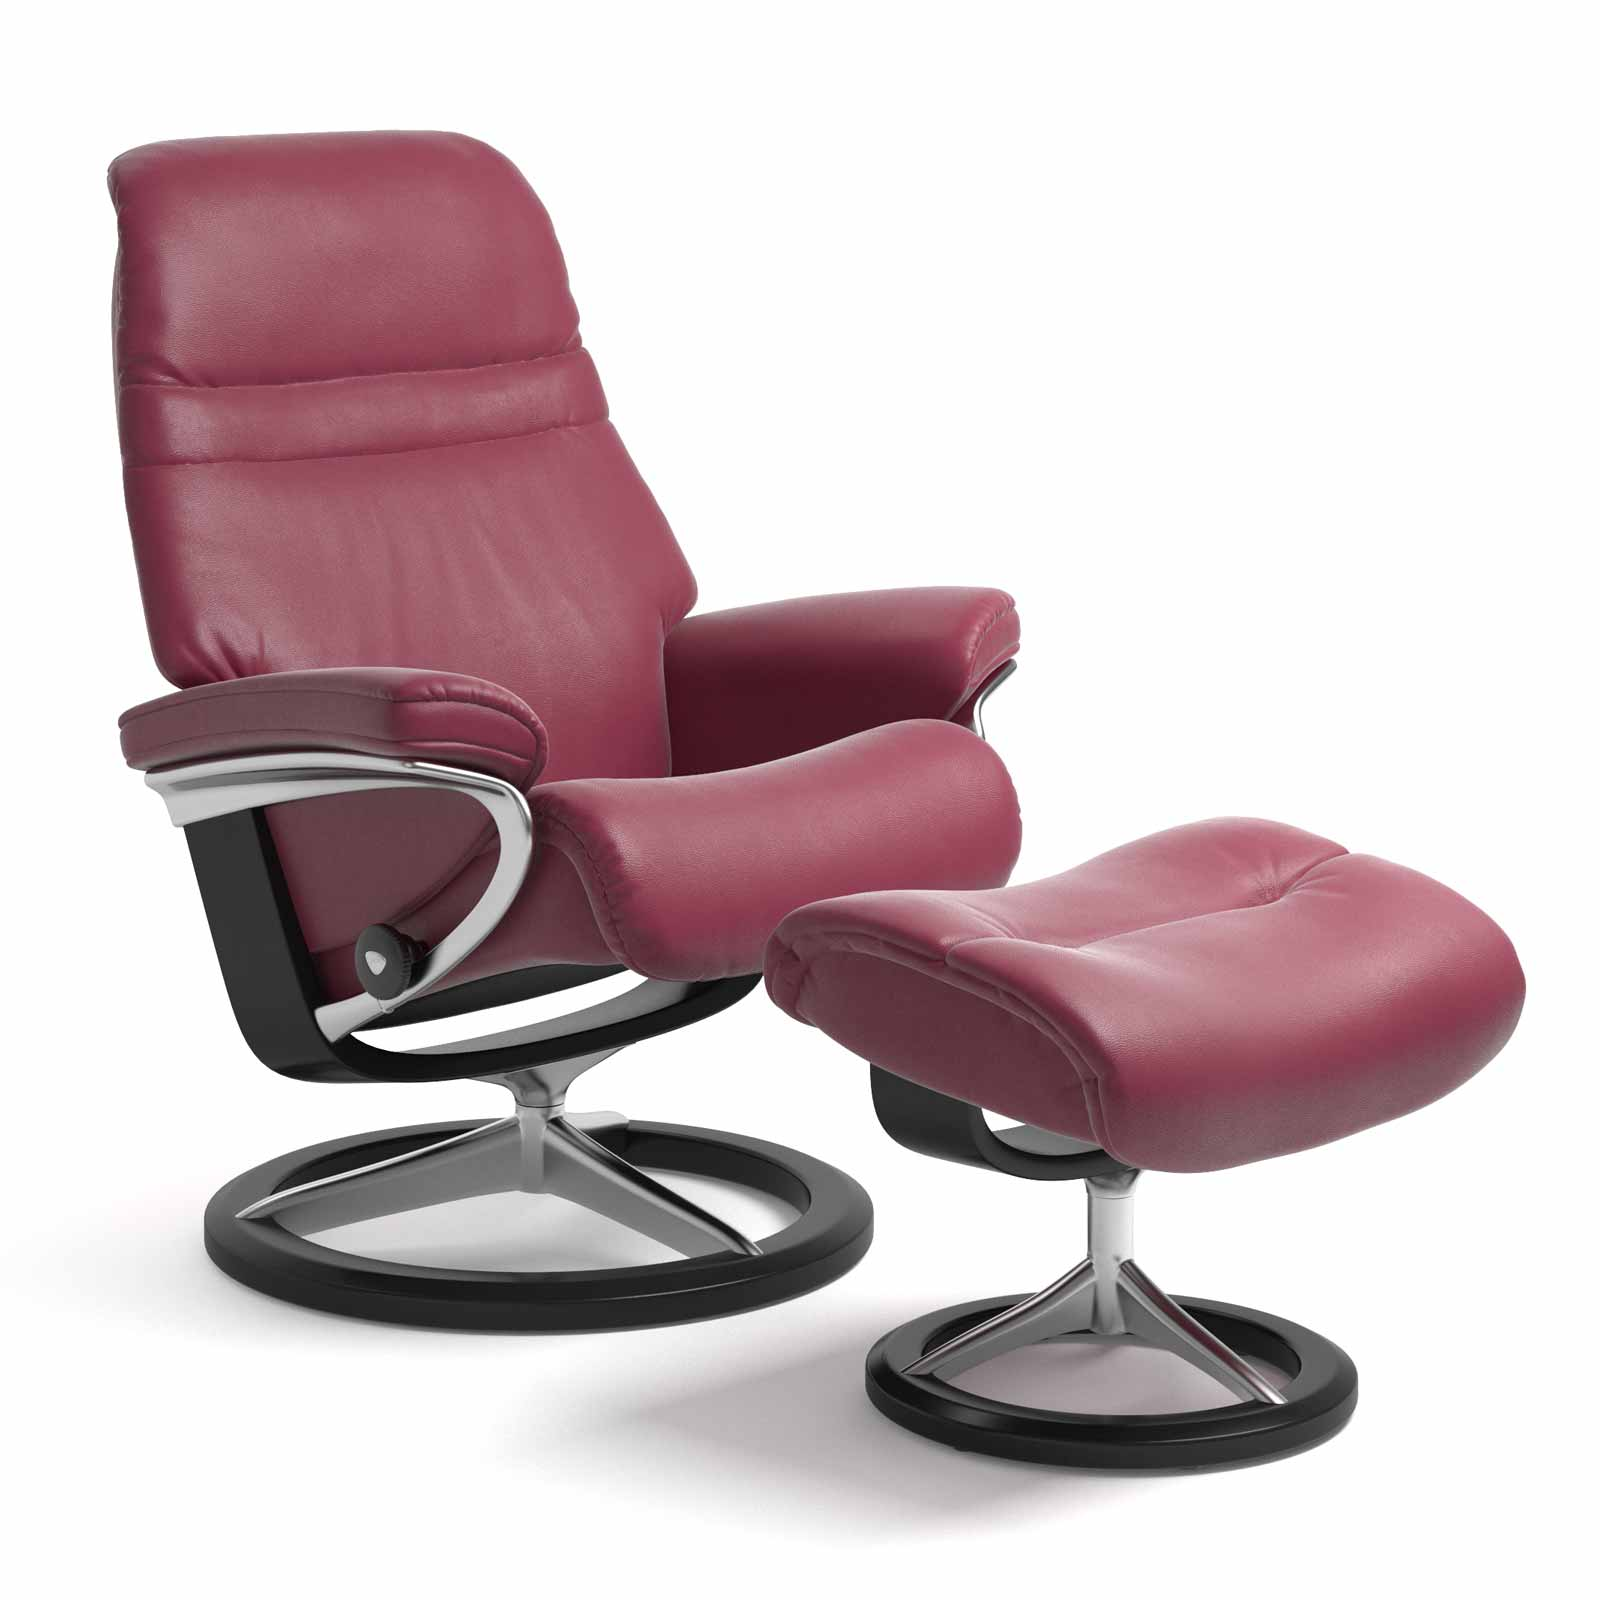 Stressless Wing Signature Sessel Stressless Sessel Mit Hocker